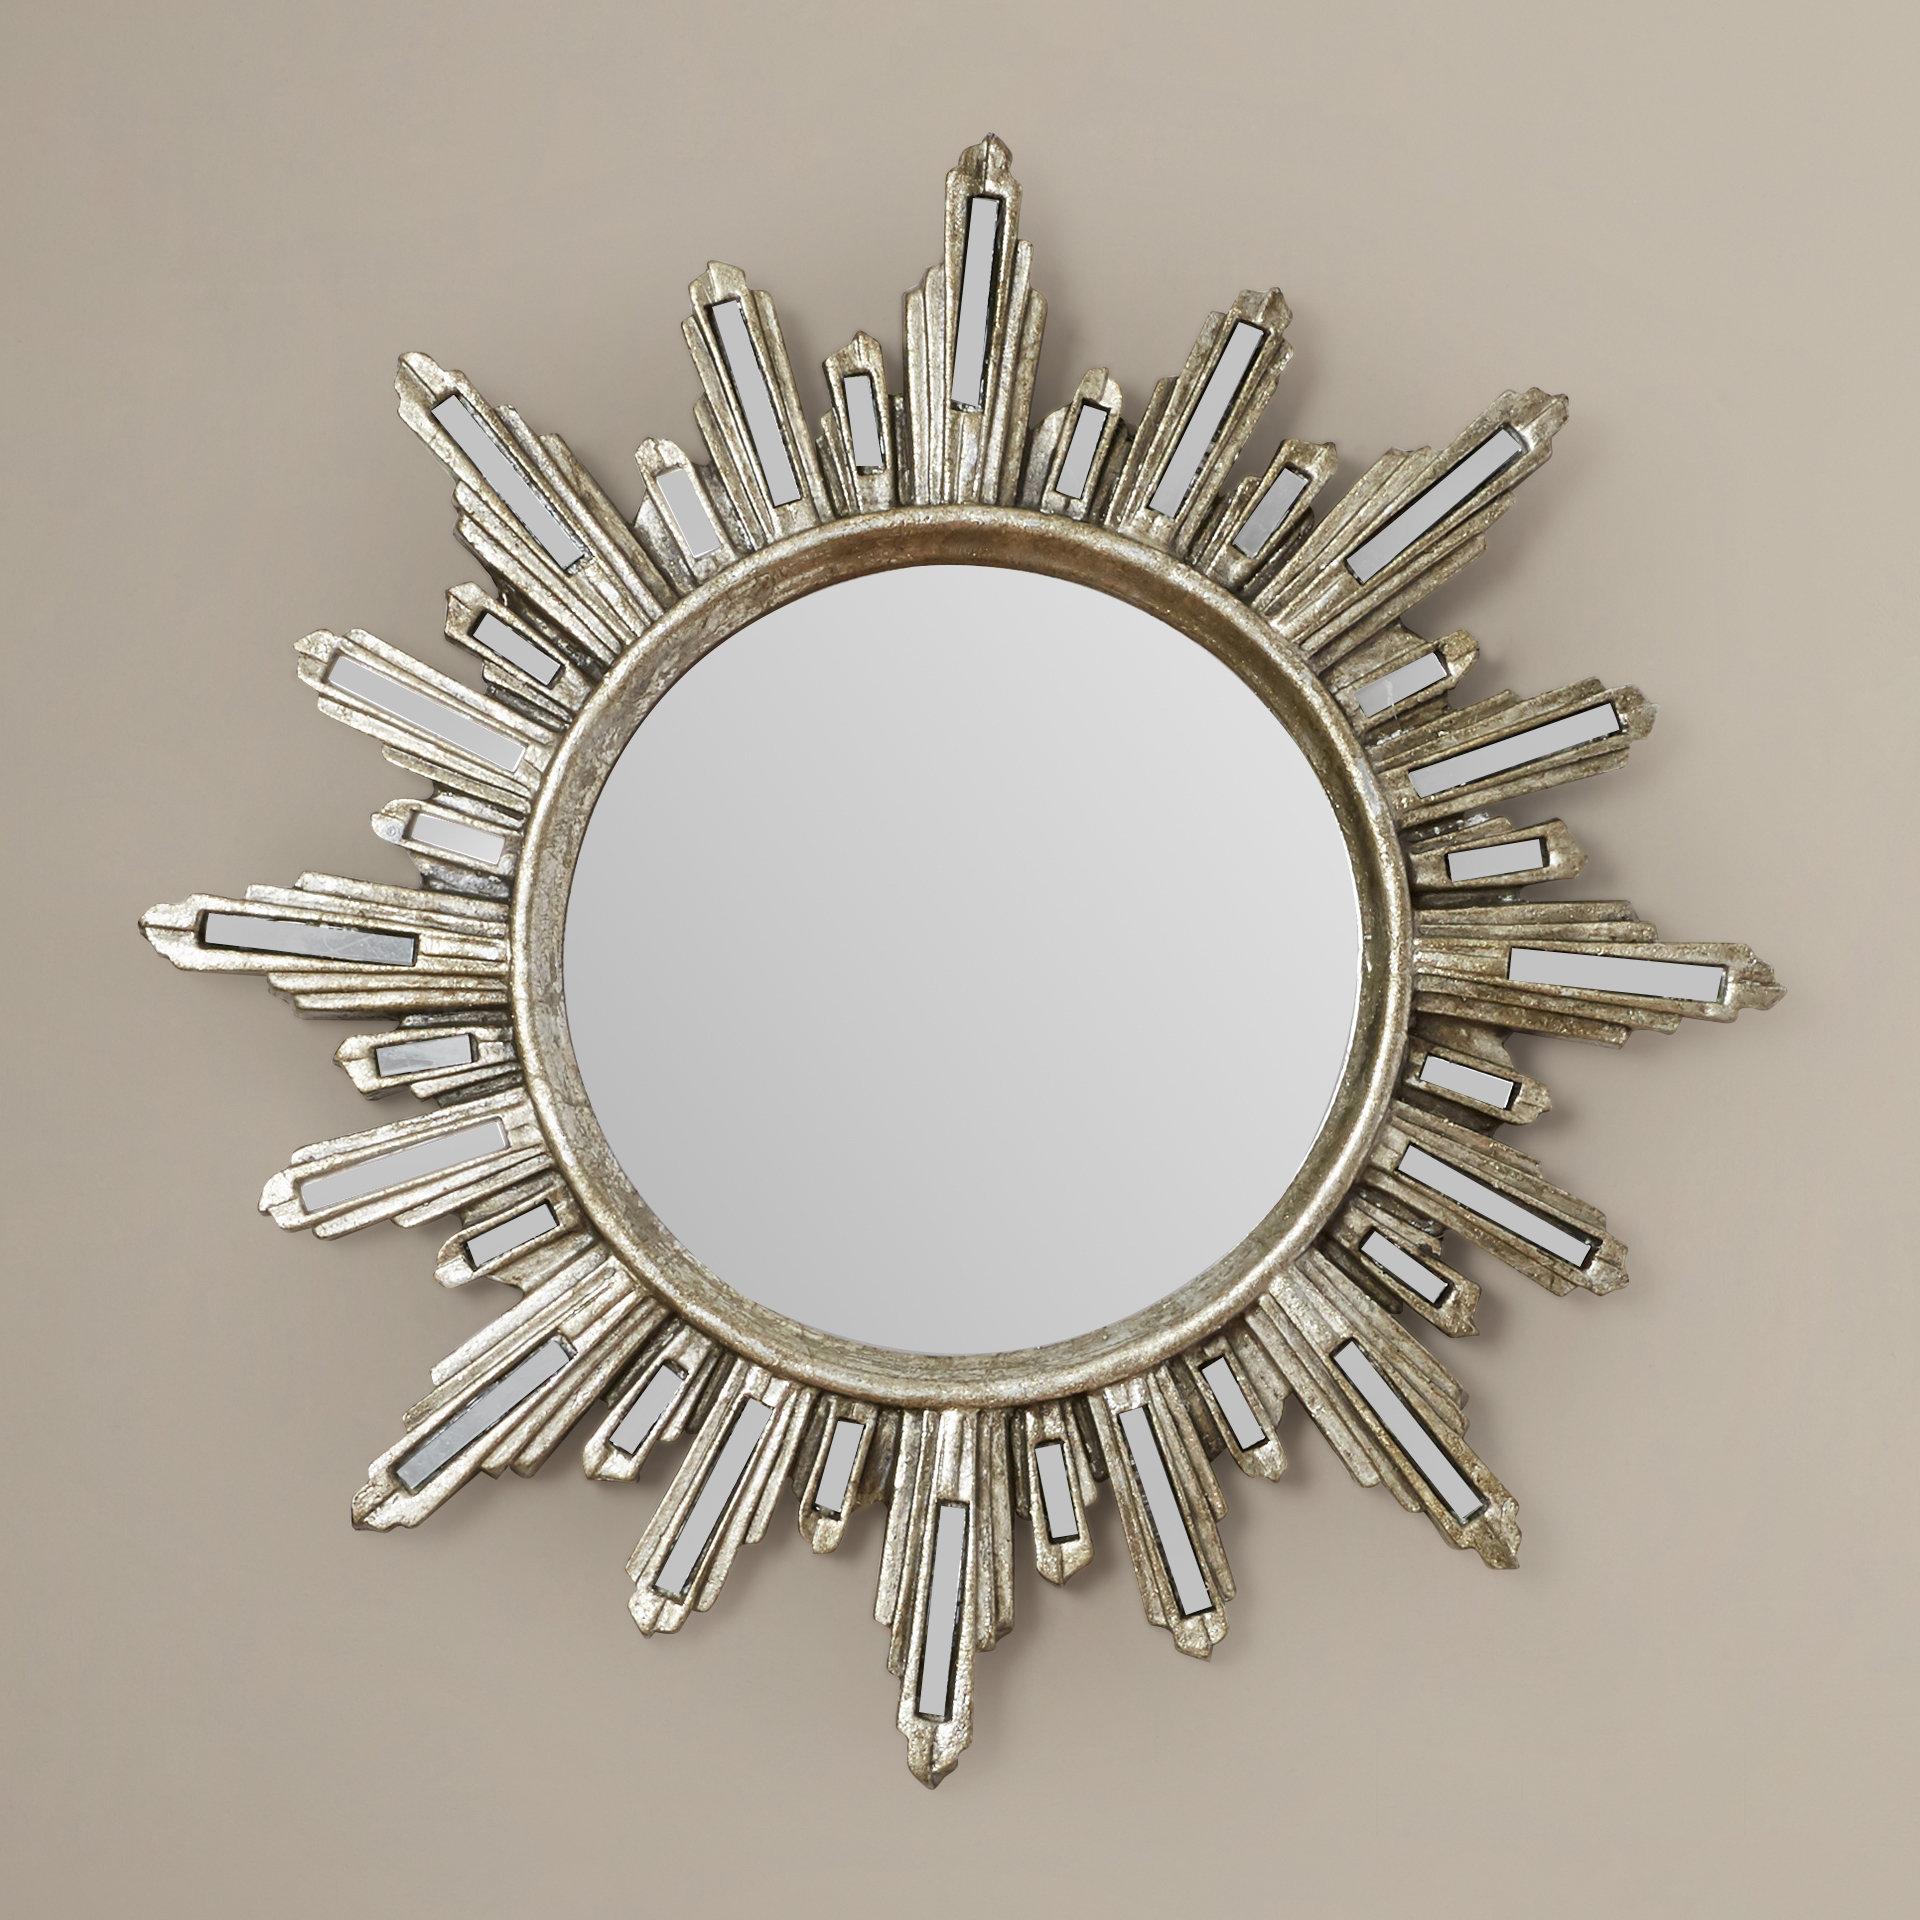 Modern Sunburst Wall Mounted Wall & Accent Mirrors | Allmodern Within Newtown Accent Mirrors (Image 11 of 20)